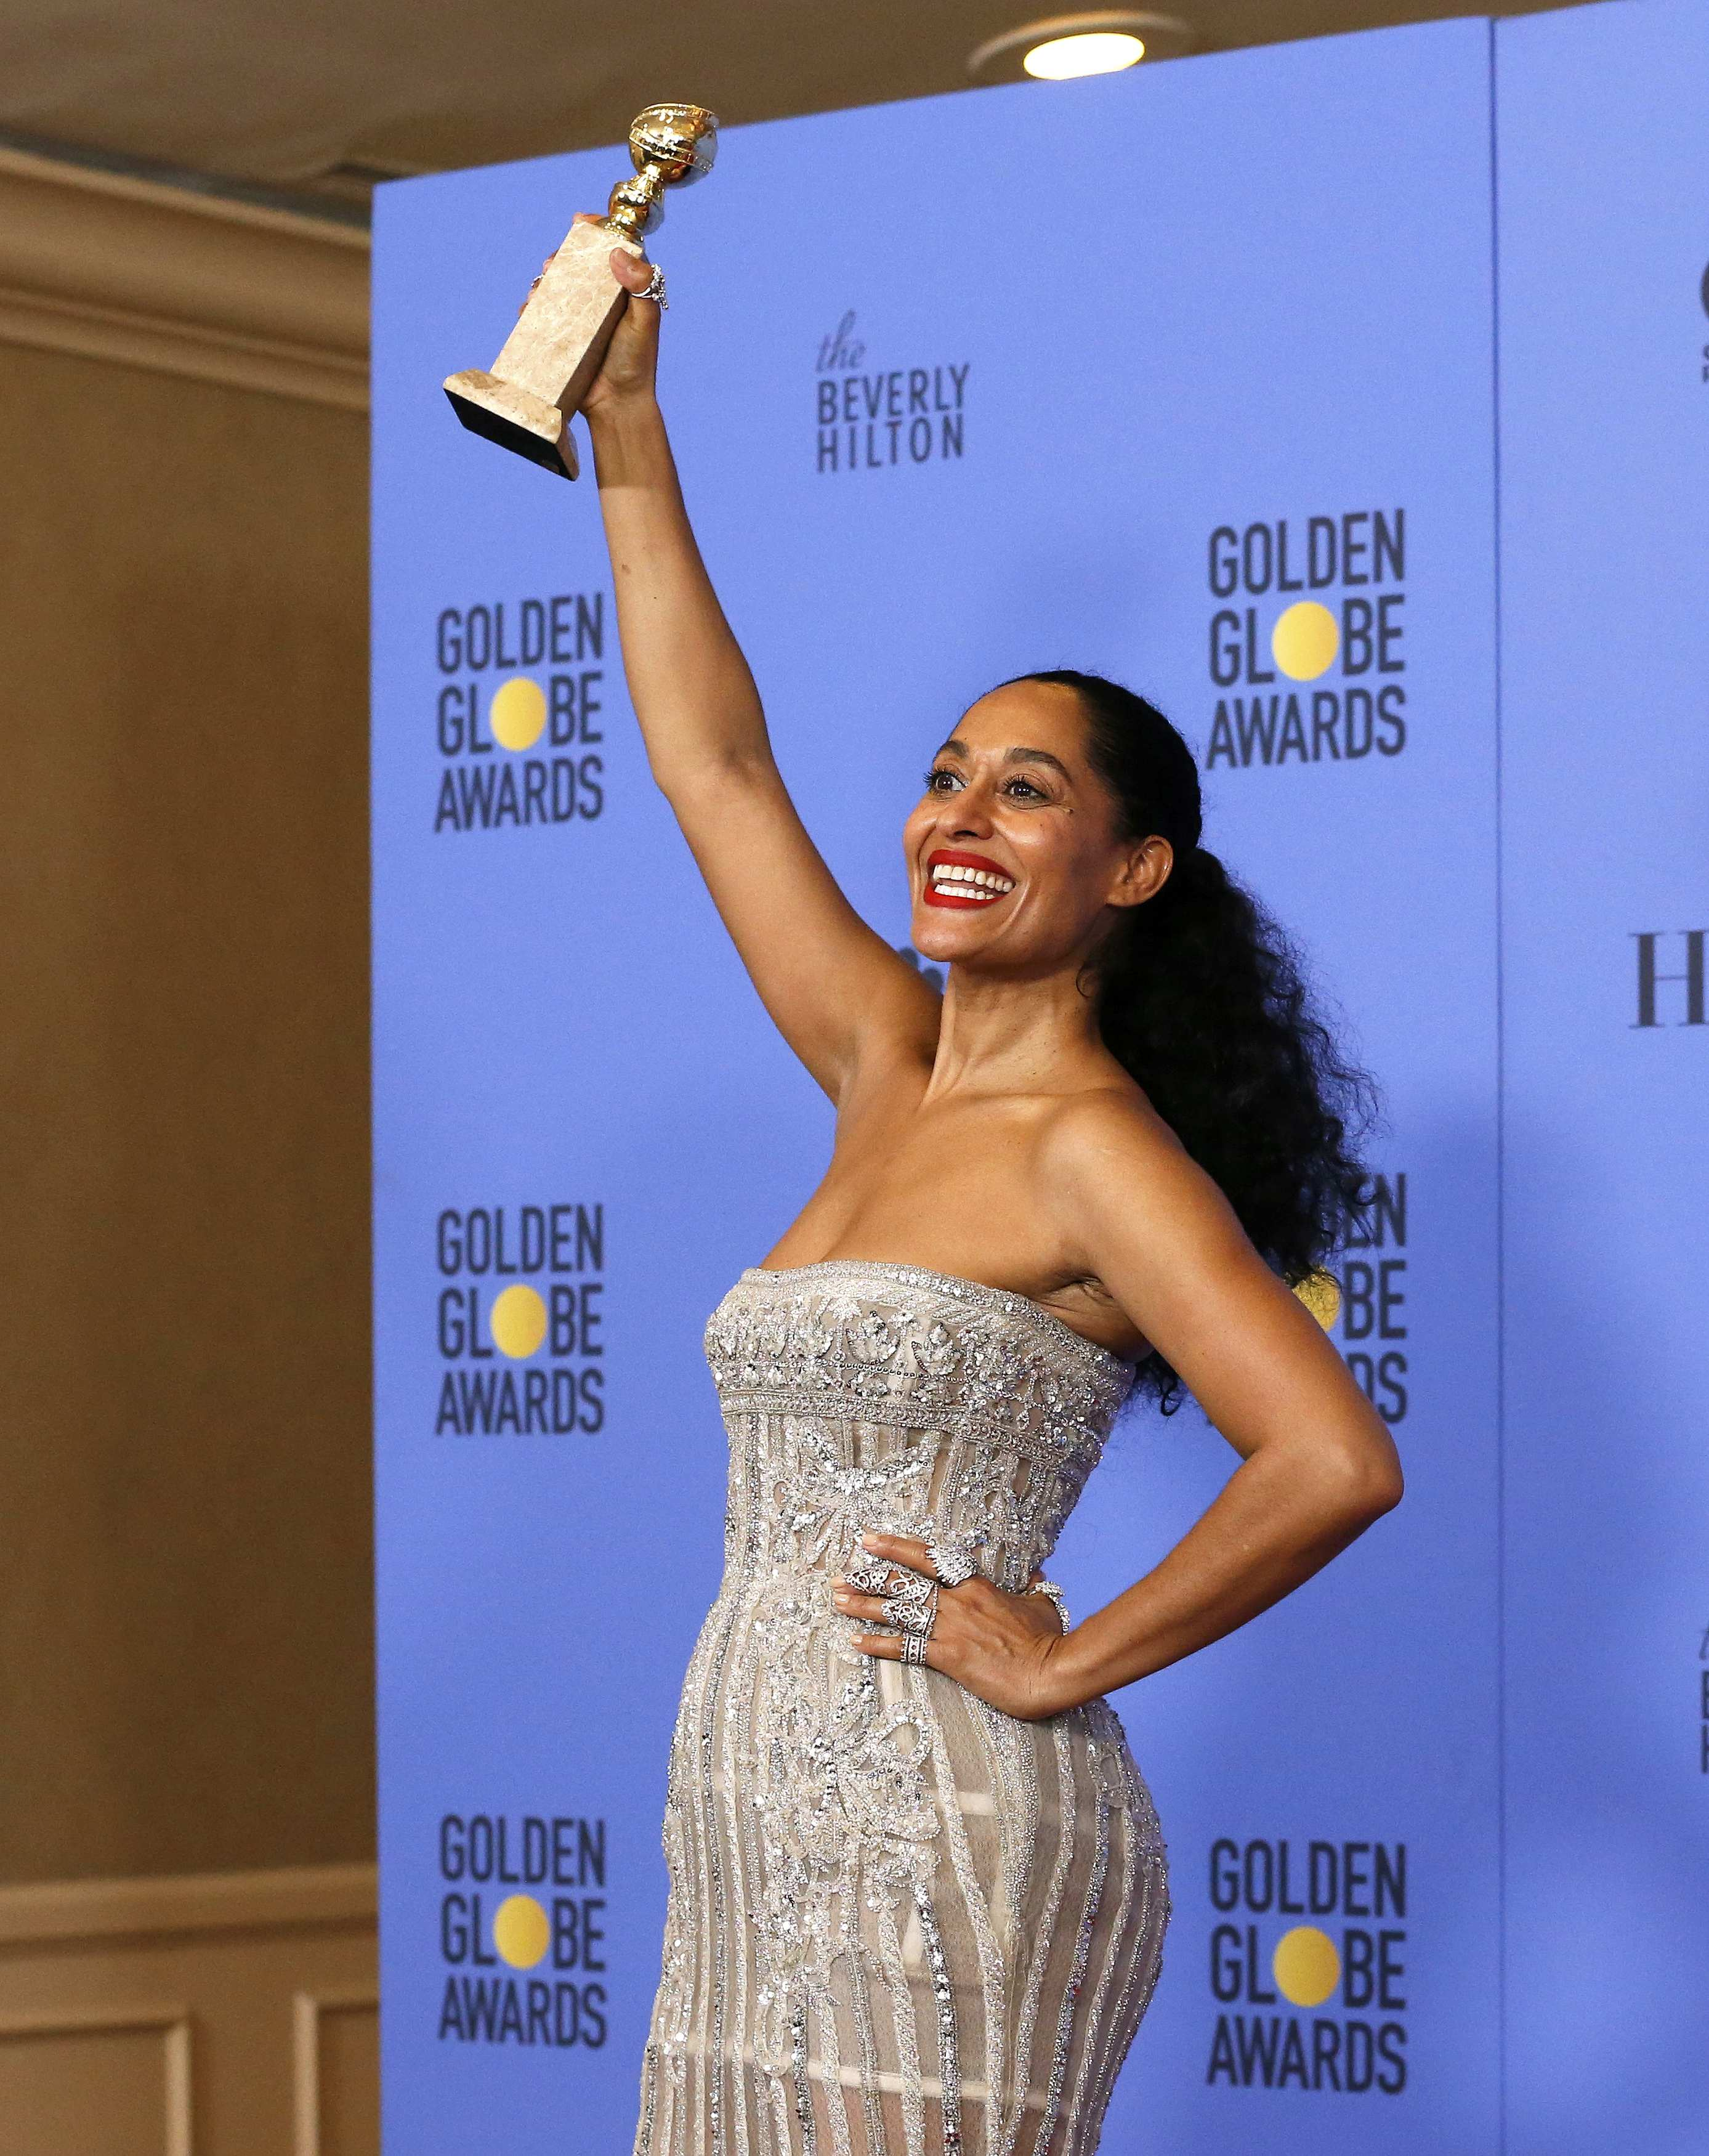 """Actress Tracee Ellis Ross holds the award for Best Performance by an Actress in a Television Series - Musical or Comedy for """"Black-ish"""" during the 74th Annual Golden Globe Awards in Beverly Hills, California, U.S., January 8, 2017. REUTERS/Mario Anzuoni"""